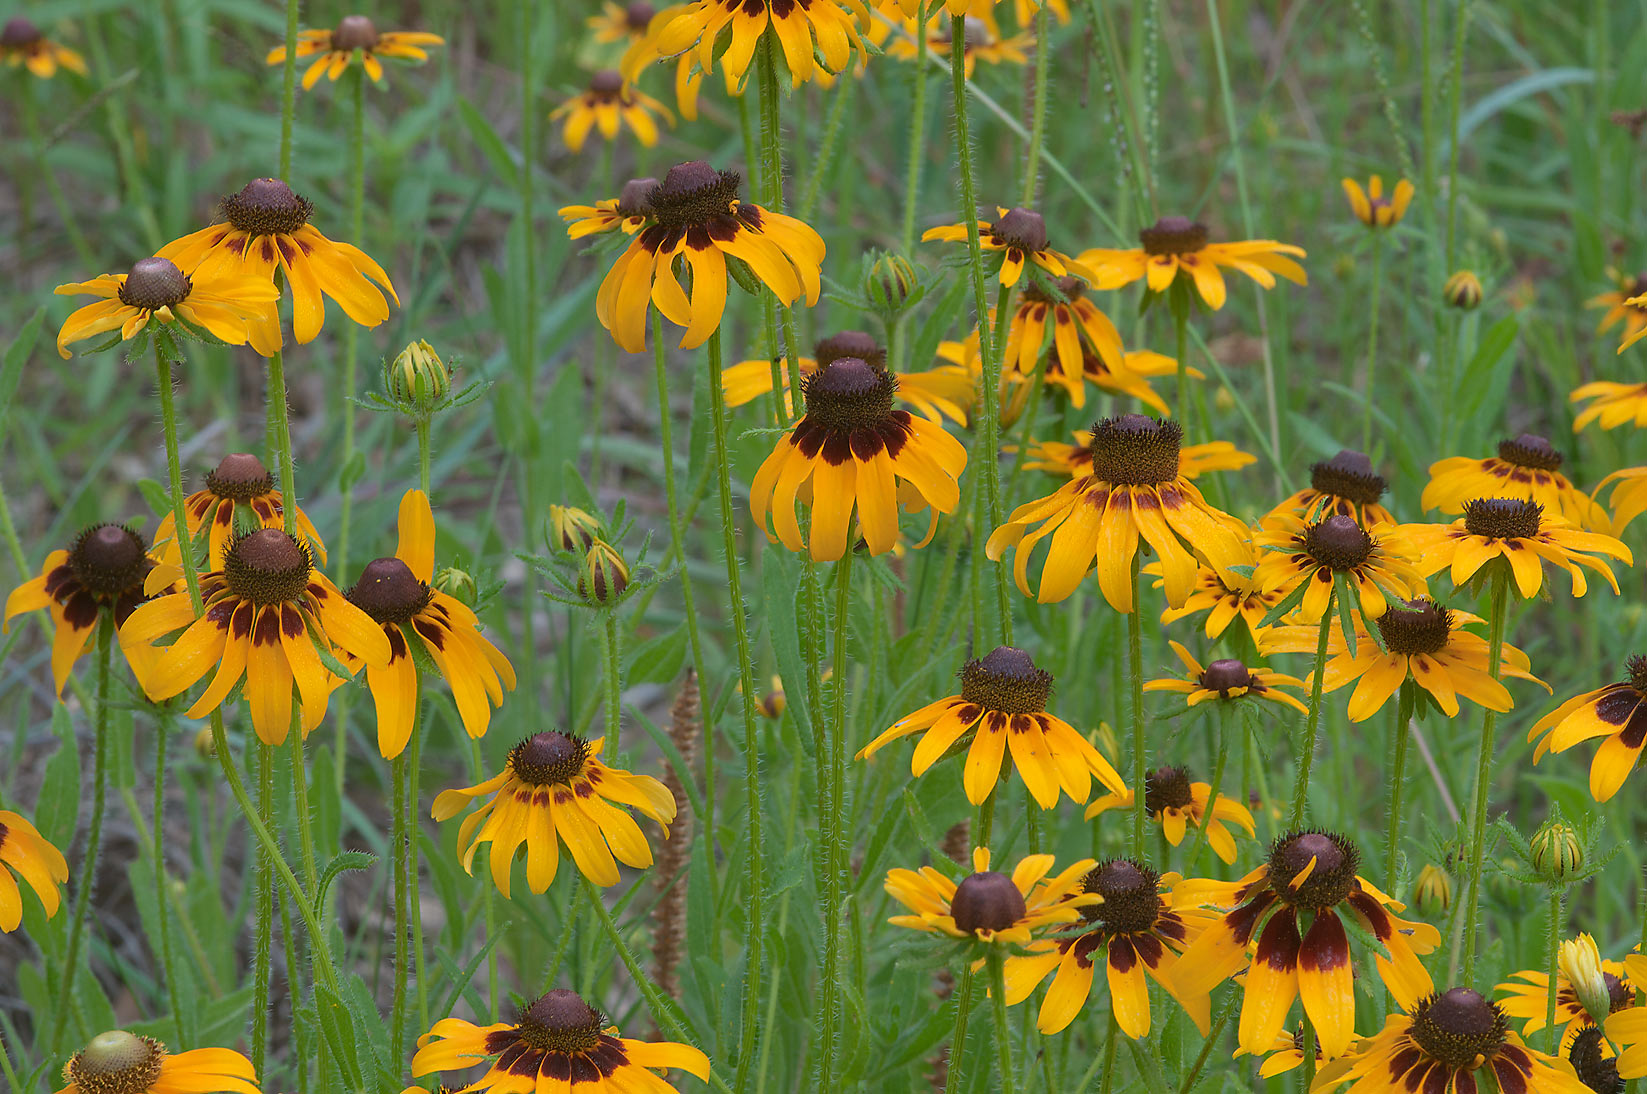 Black Eyed Susan (Rudbeckia hirta) flowers in Lick Creek Park. College Station, Texas